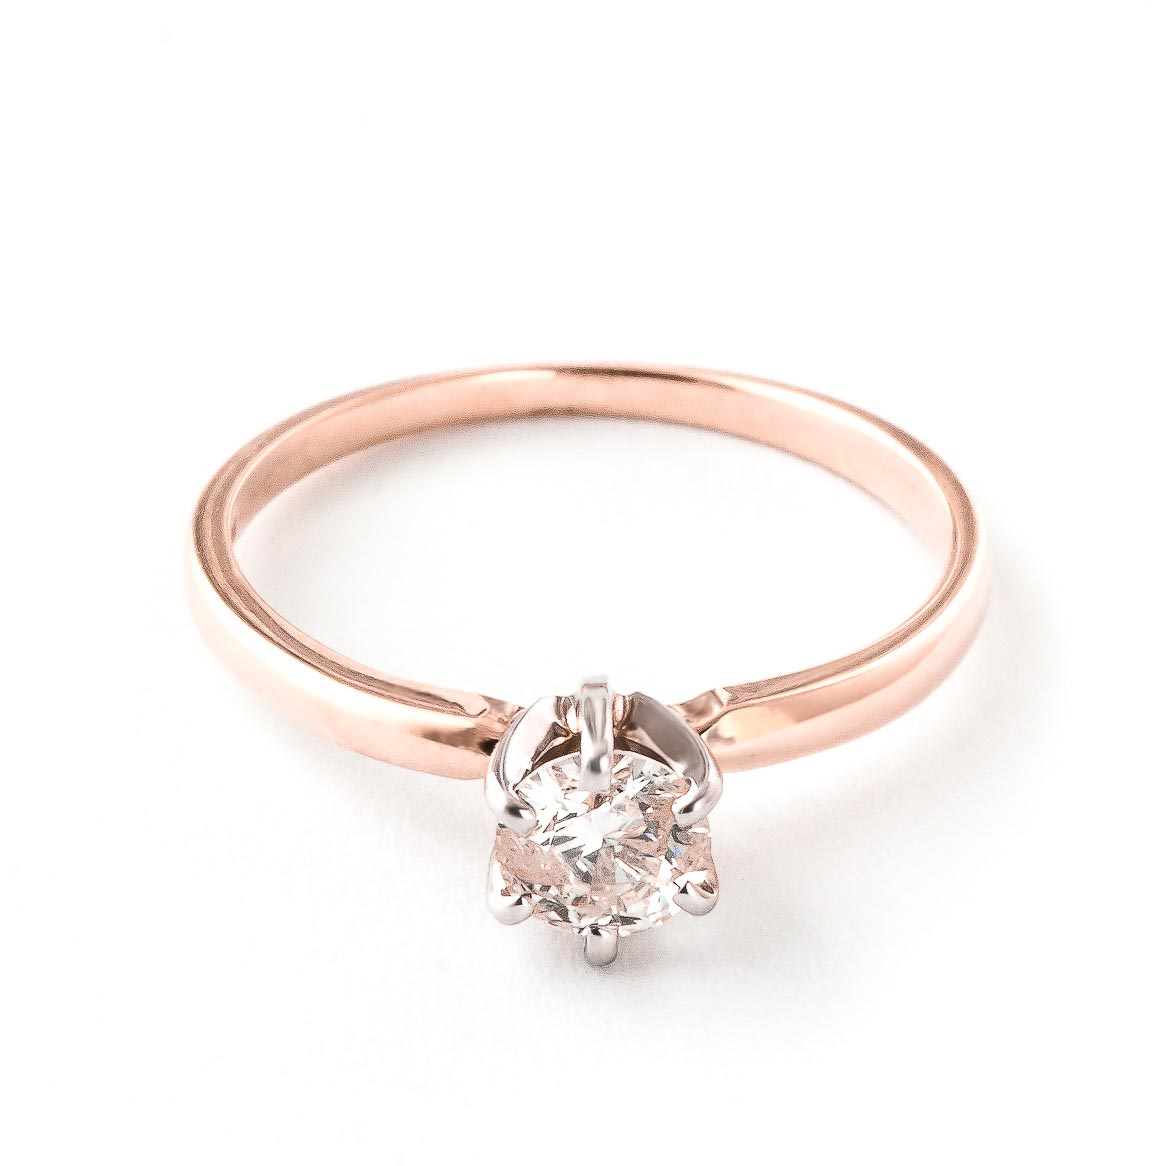 Diamond Solitaire Ring 0.4 ct in 9ct Rose Gold